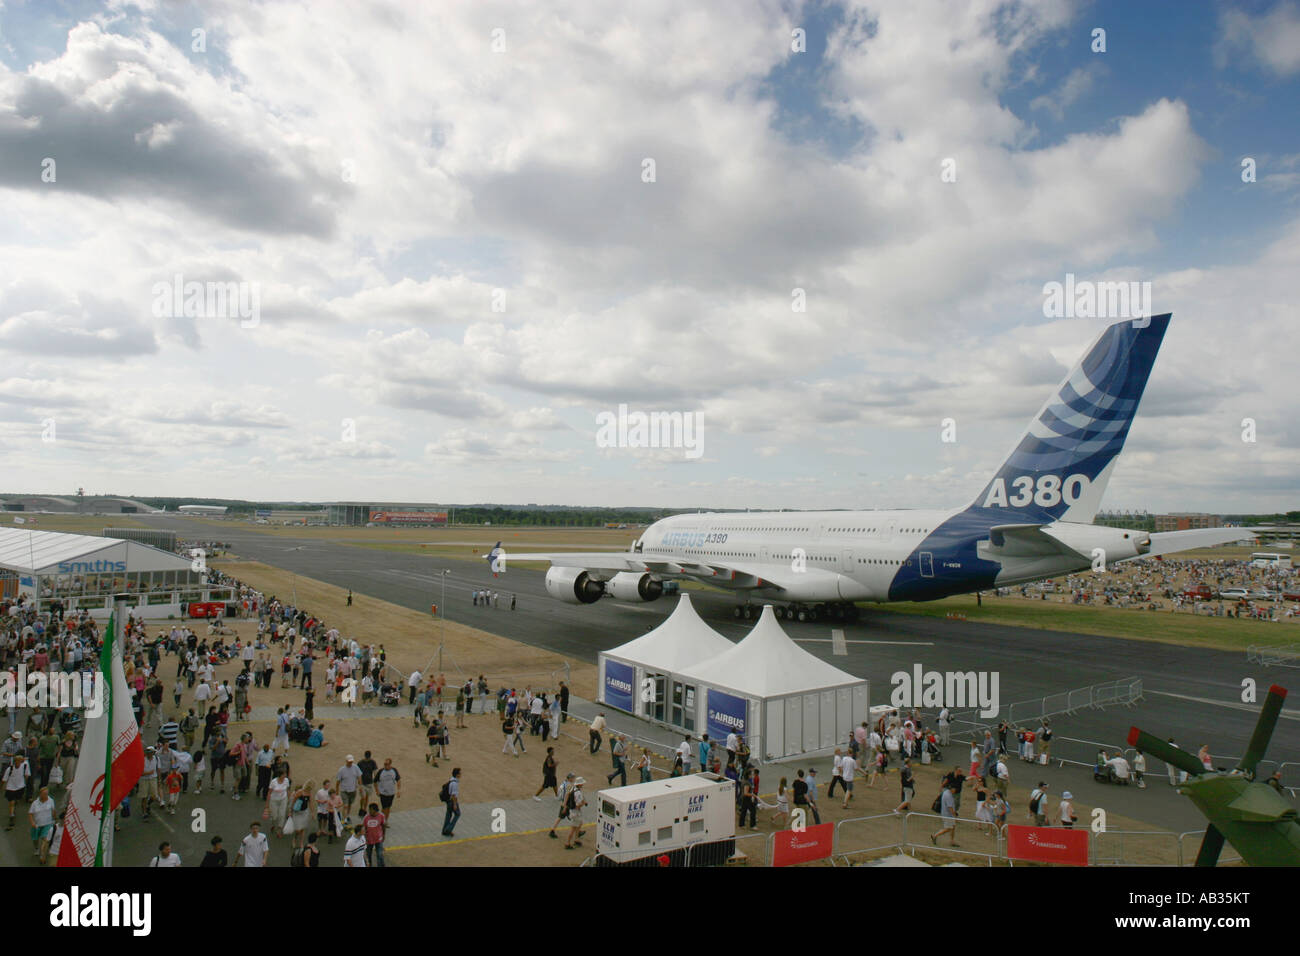 Commercial airliner Airbus A380 at International Airshow 2006 UK - Stock Image